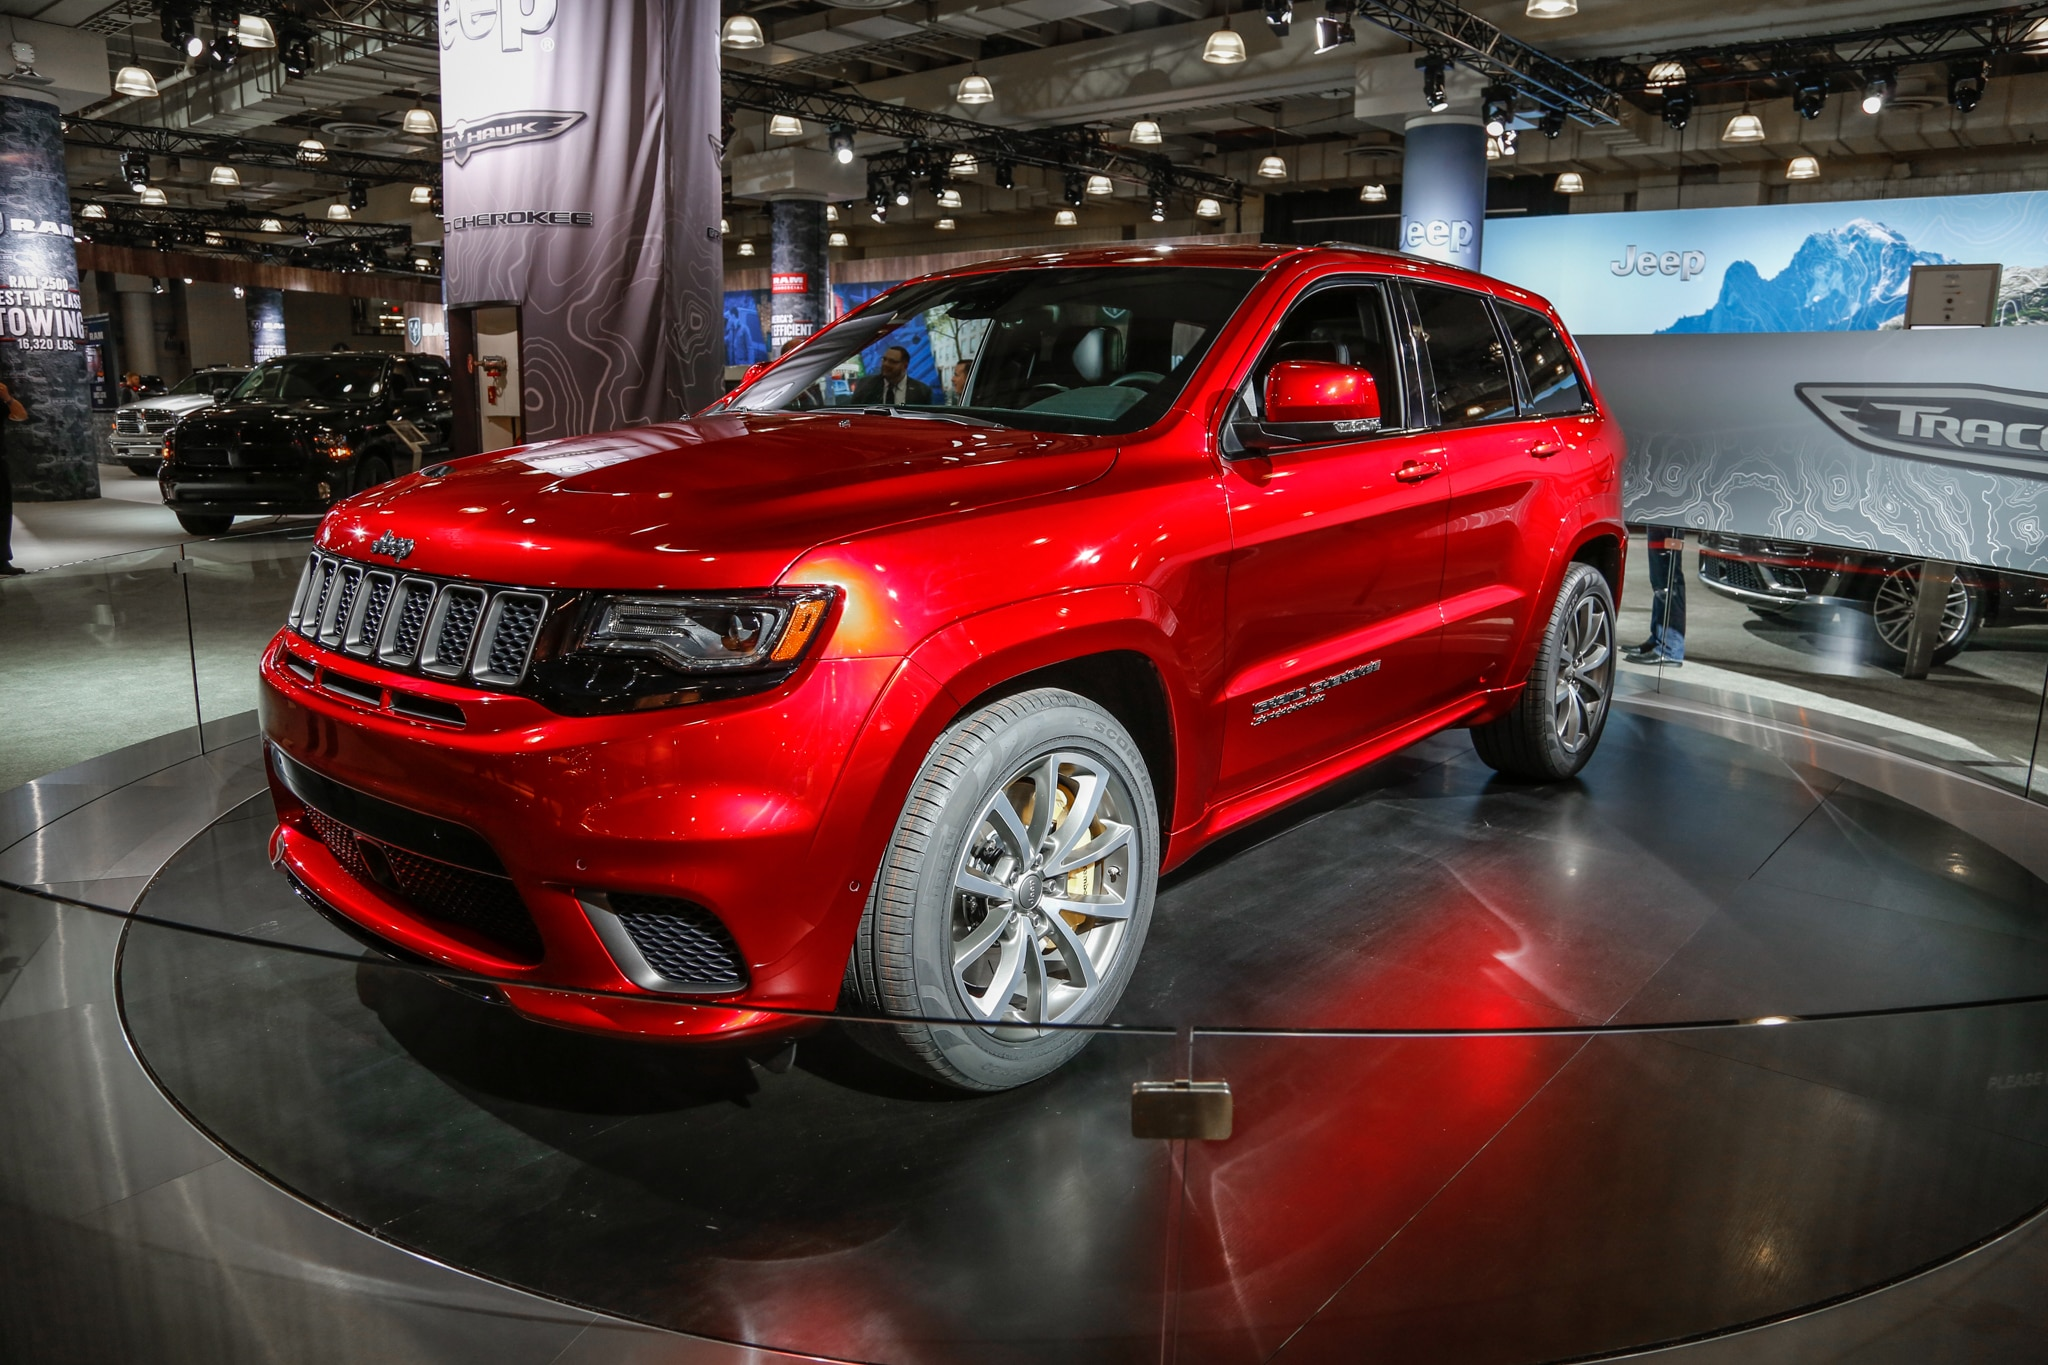 2018 Jeep Grand Cherokee Trackhawk Front Three Quarter 01